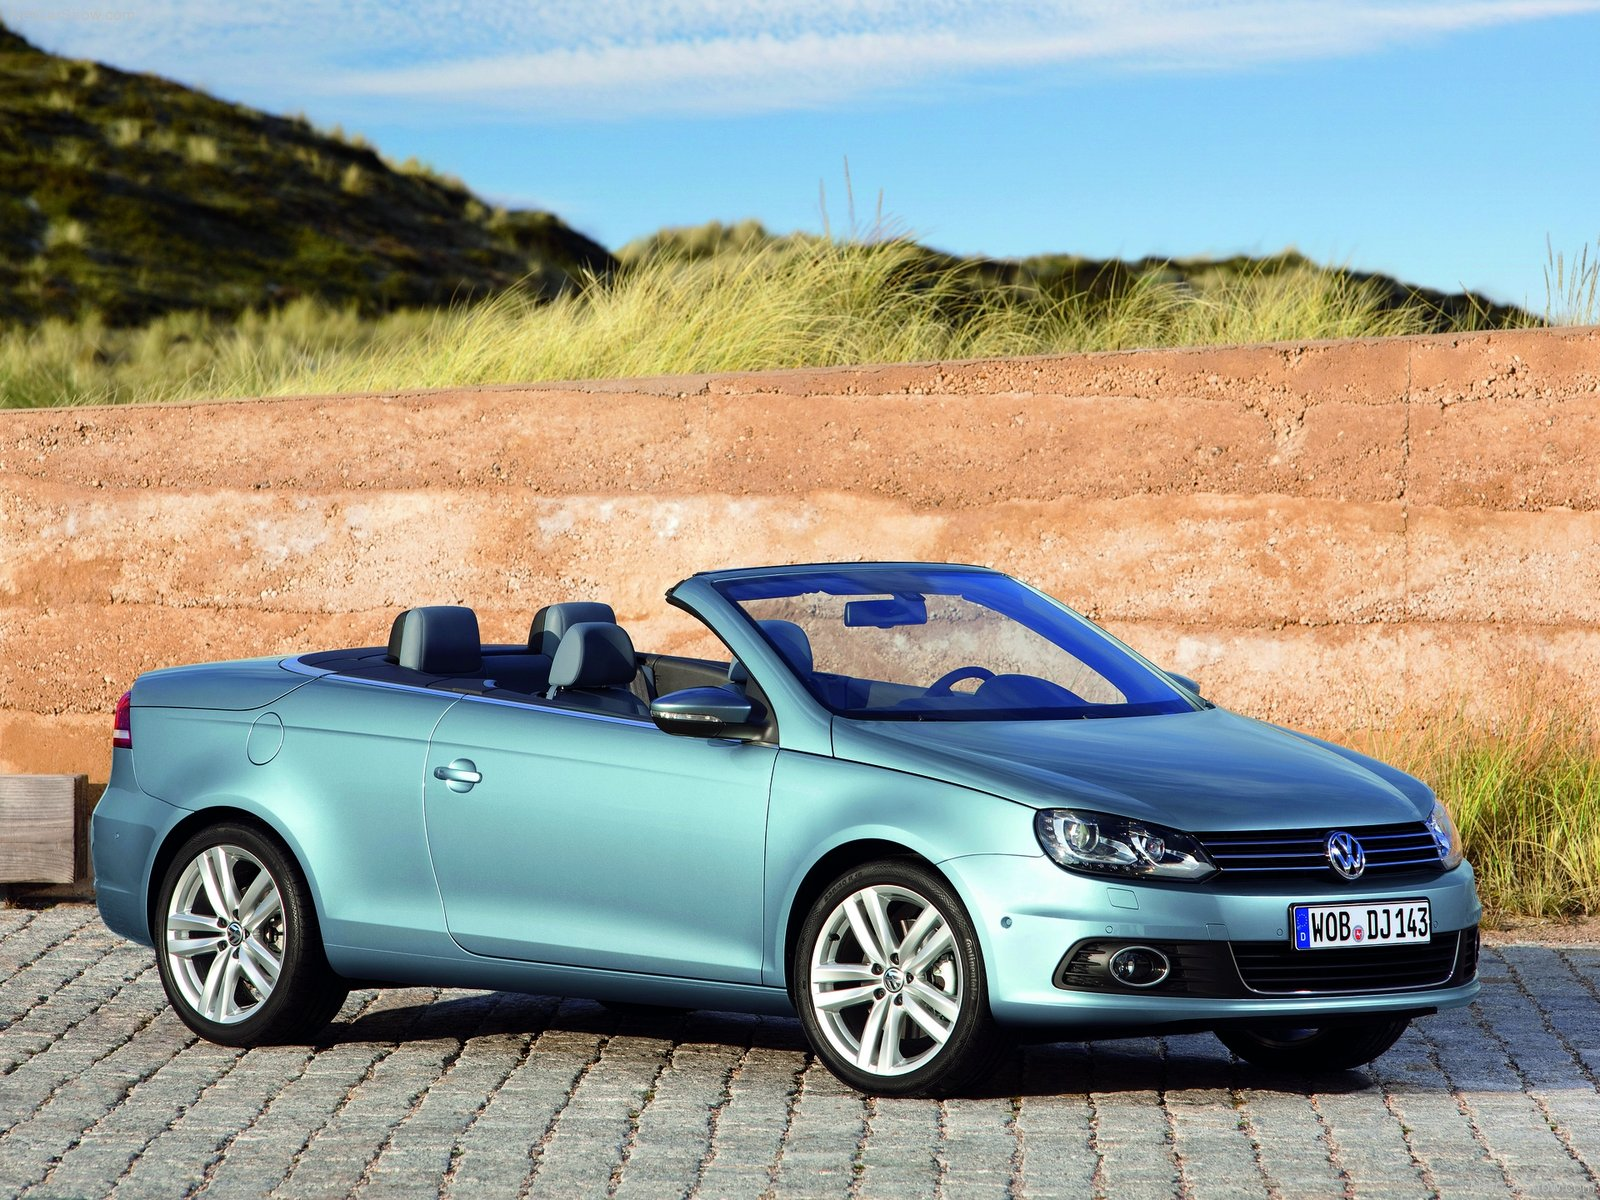 volkswagen eos essais fiabilit avis photos prix. Black Bedroom Furniture Sets. Home Design Ideas